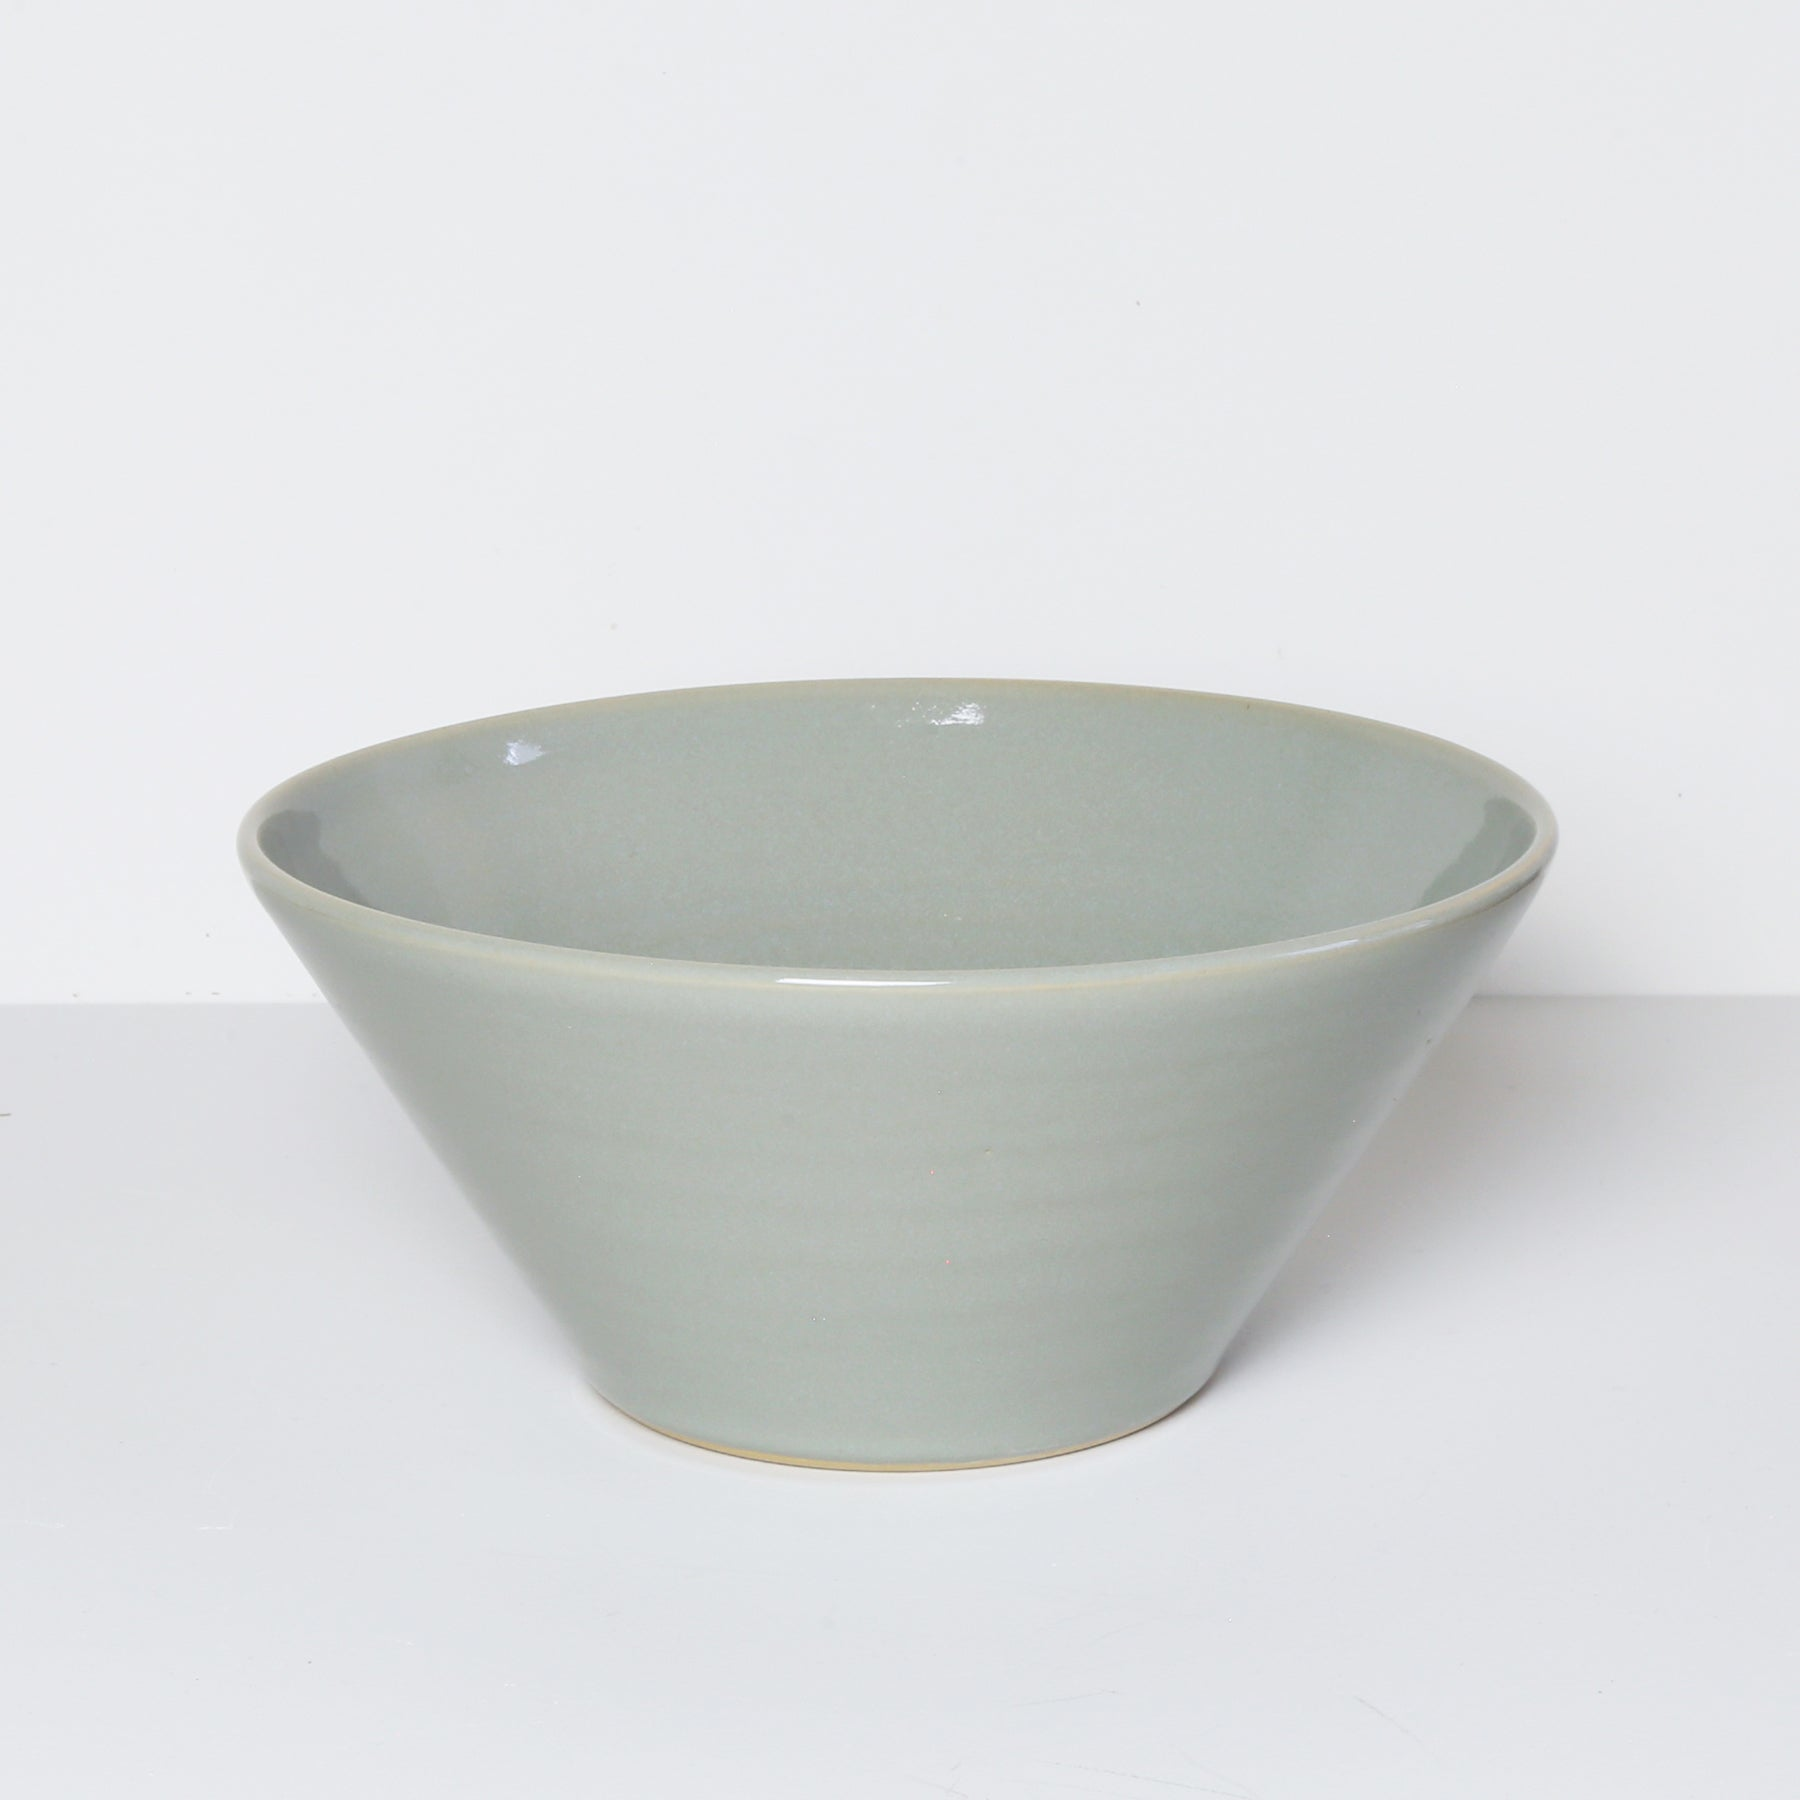 Medium Bowl, Jade